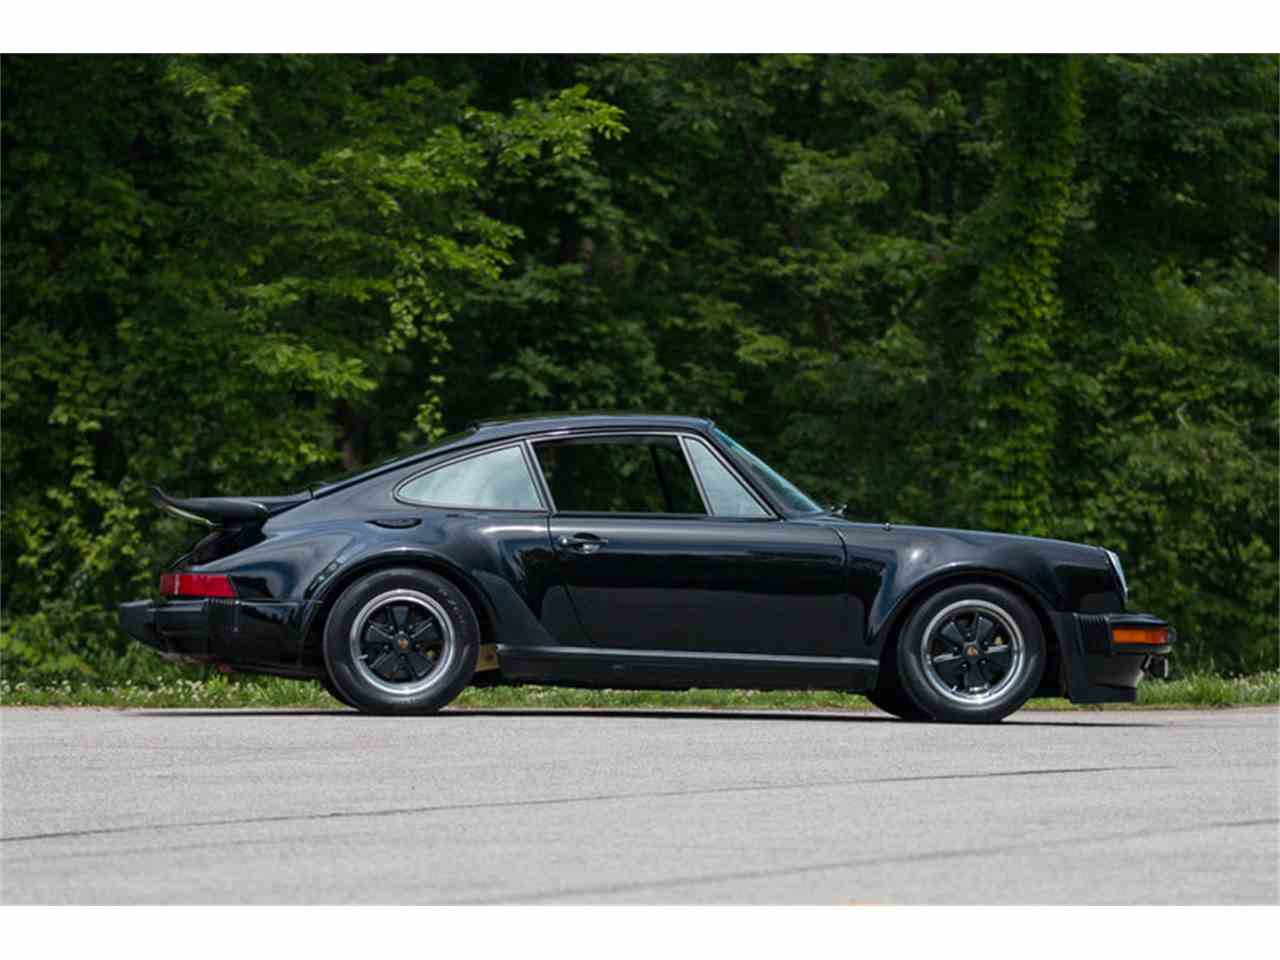 Large Picture of 1976 930 located in St. Charles Missouri - $119,995.00 Offered by Fast Lane Classic Cars Inc. - LTQ4